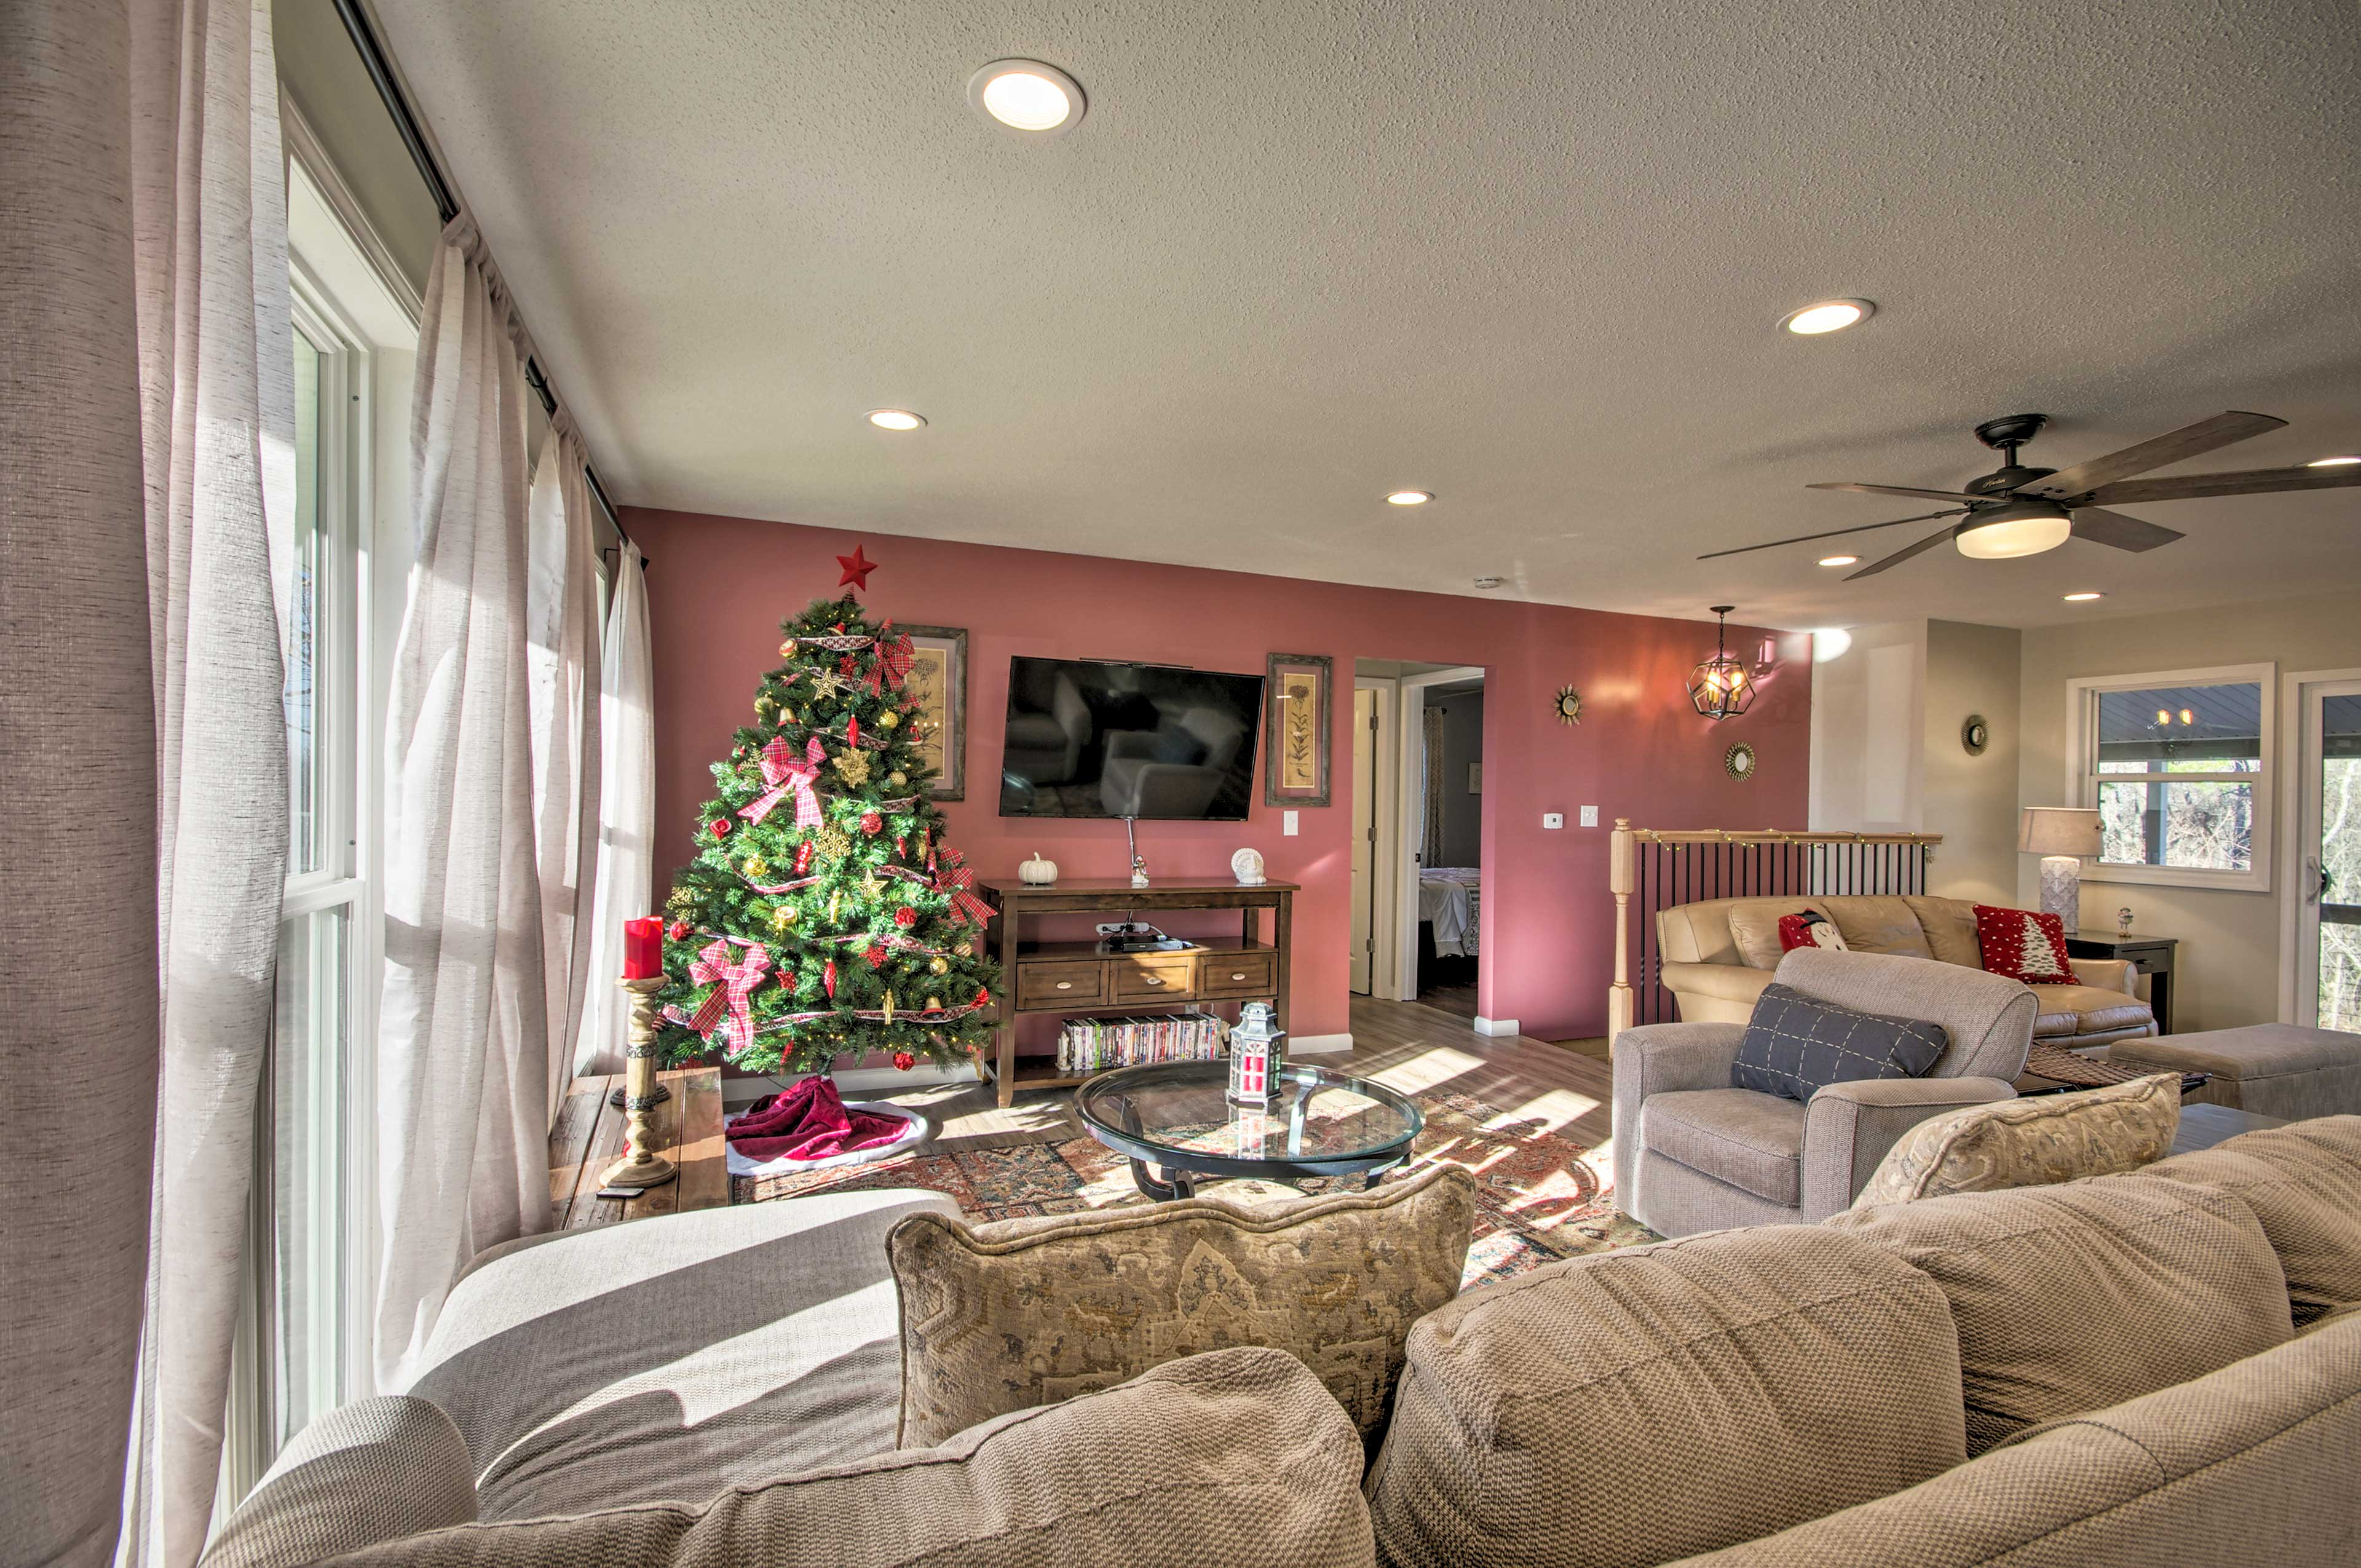 Living Room 1 | Central Air Conditioning/Heat